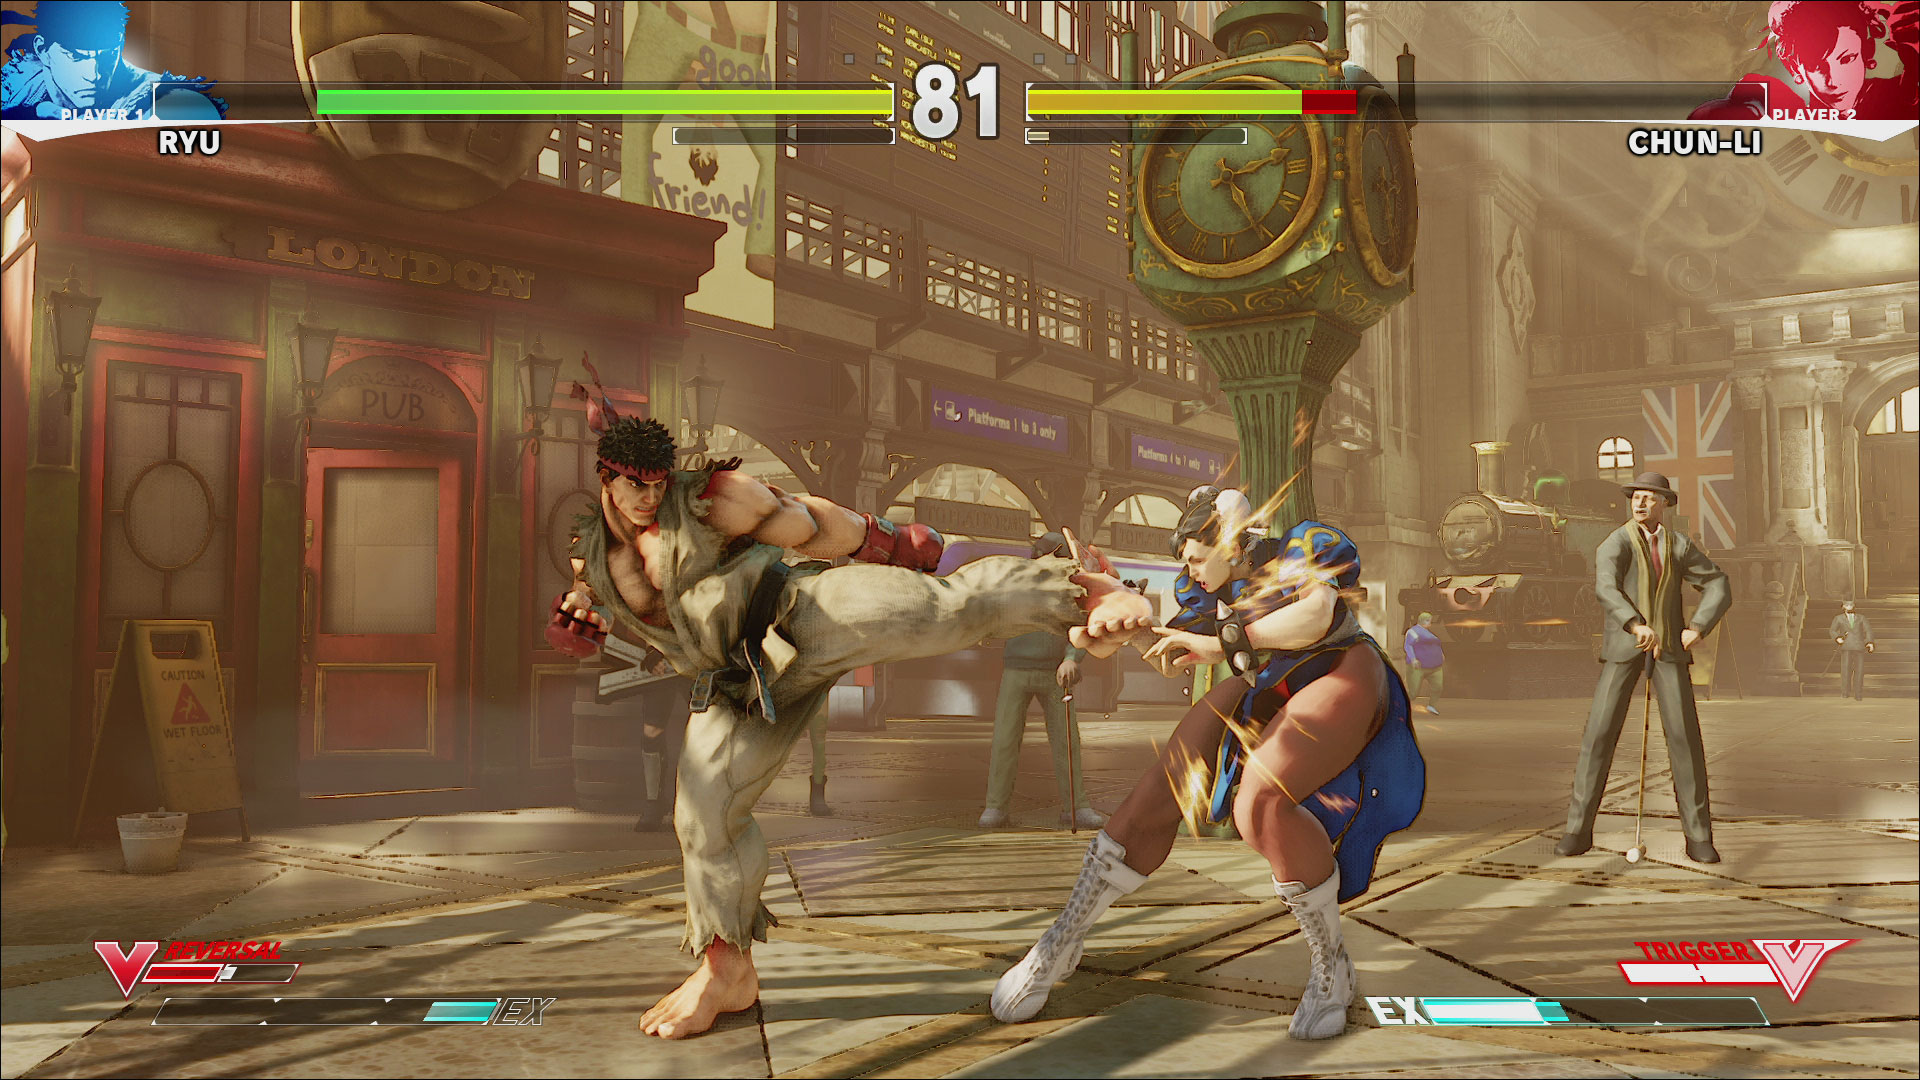 Street,Fighter,BETA,fighting,games,action,العاب,قتال,اكشن,بيتا